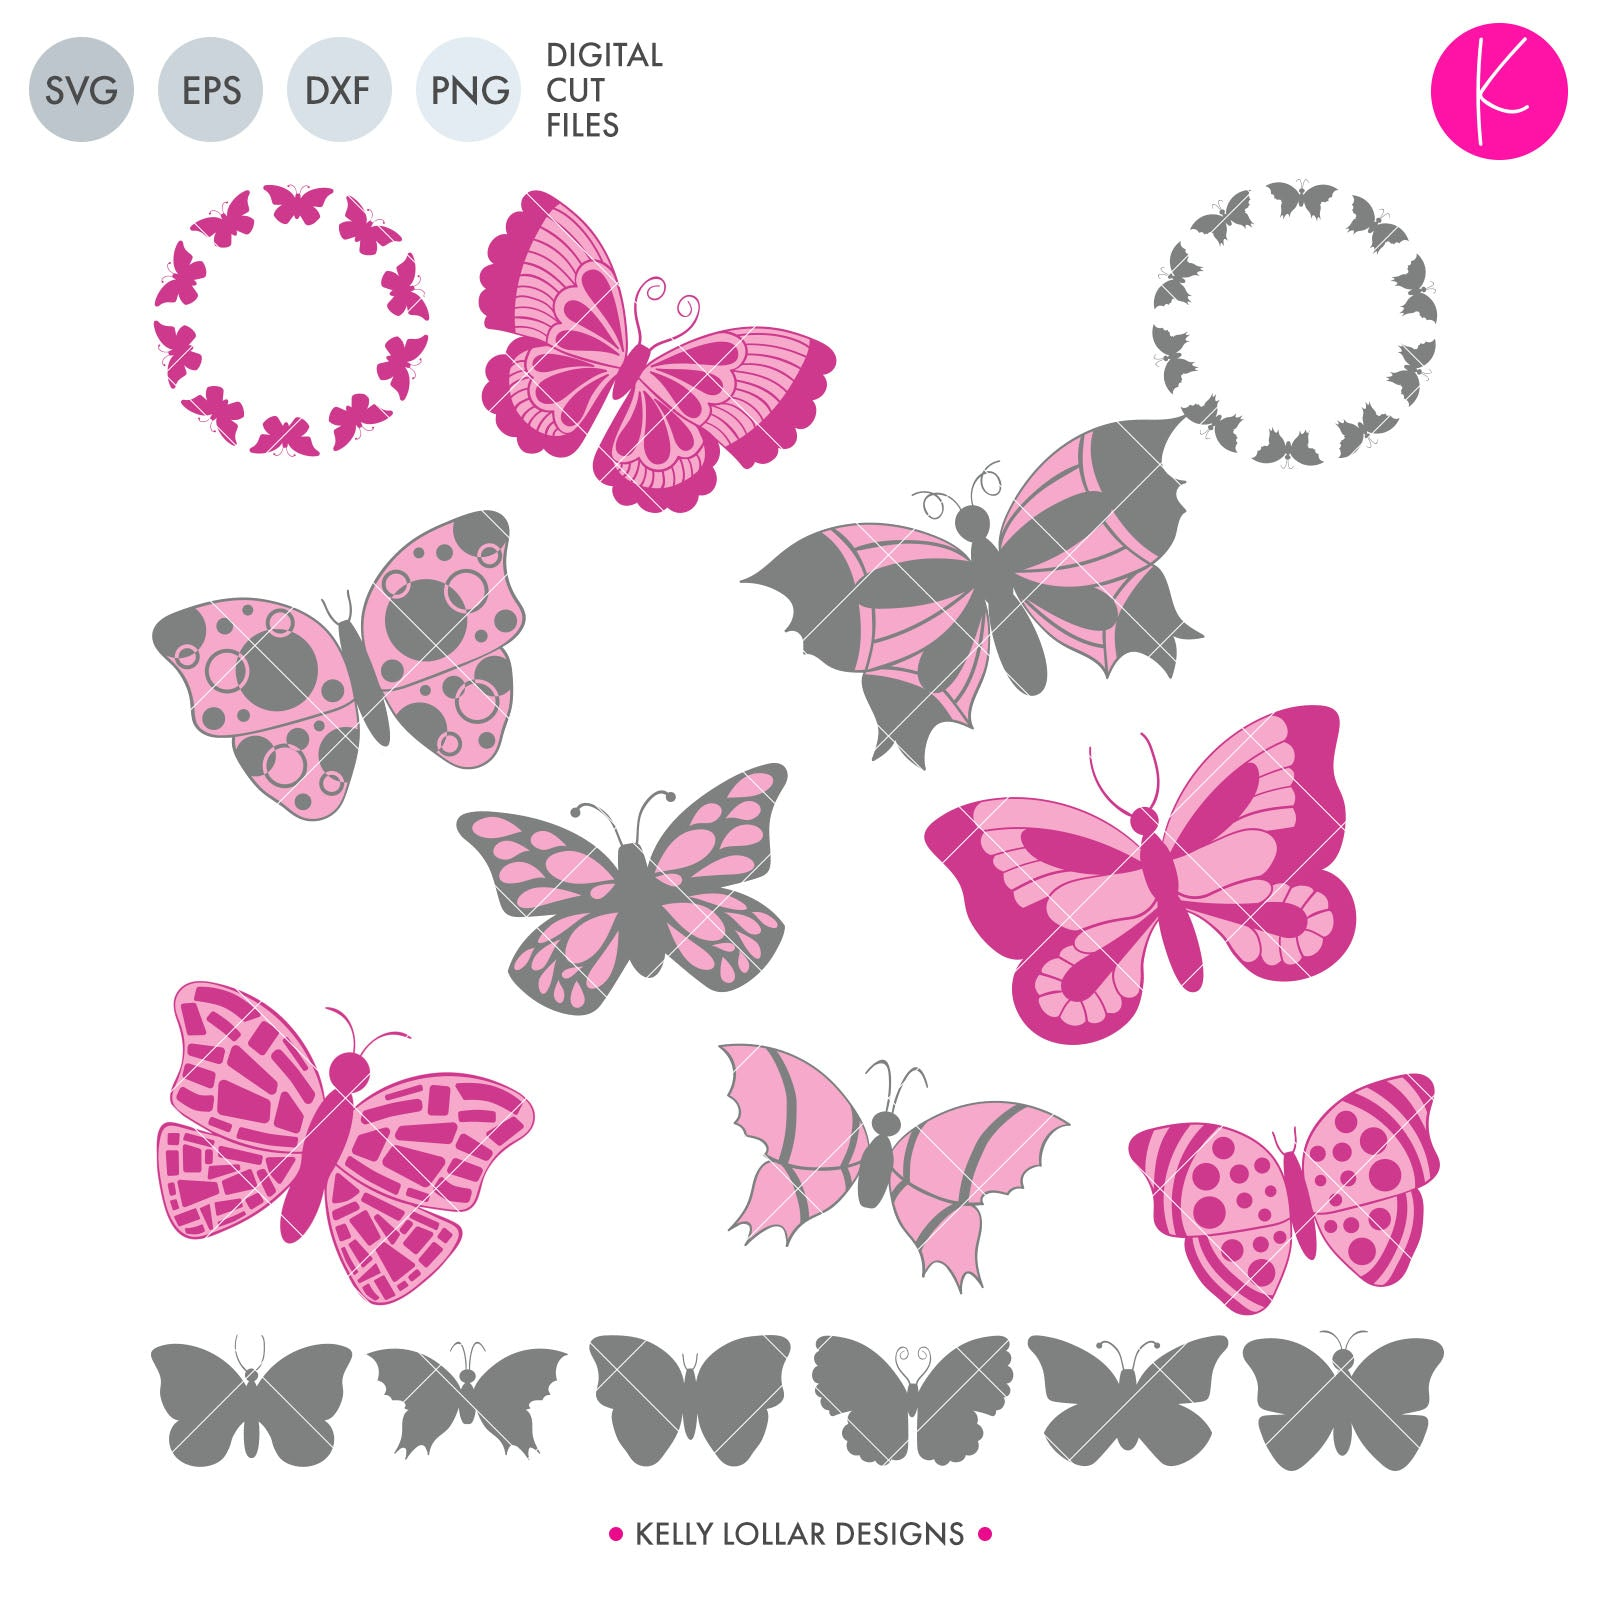 Butterfly Pack | SVG DXF EPS PNG Cut Files BUTTERFLY PACK | SVG DXF EPS PNG CUT FILES | Set of 16 Butterfly designs including silhouettes, detailed and monogram frames This 16 piece butterfly svg pack is a handy staple